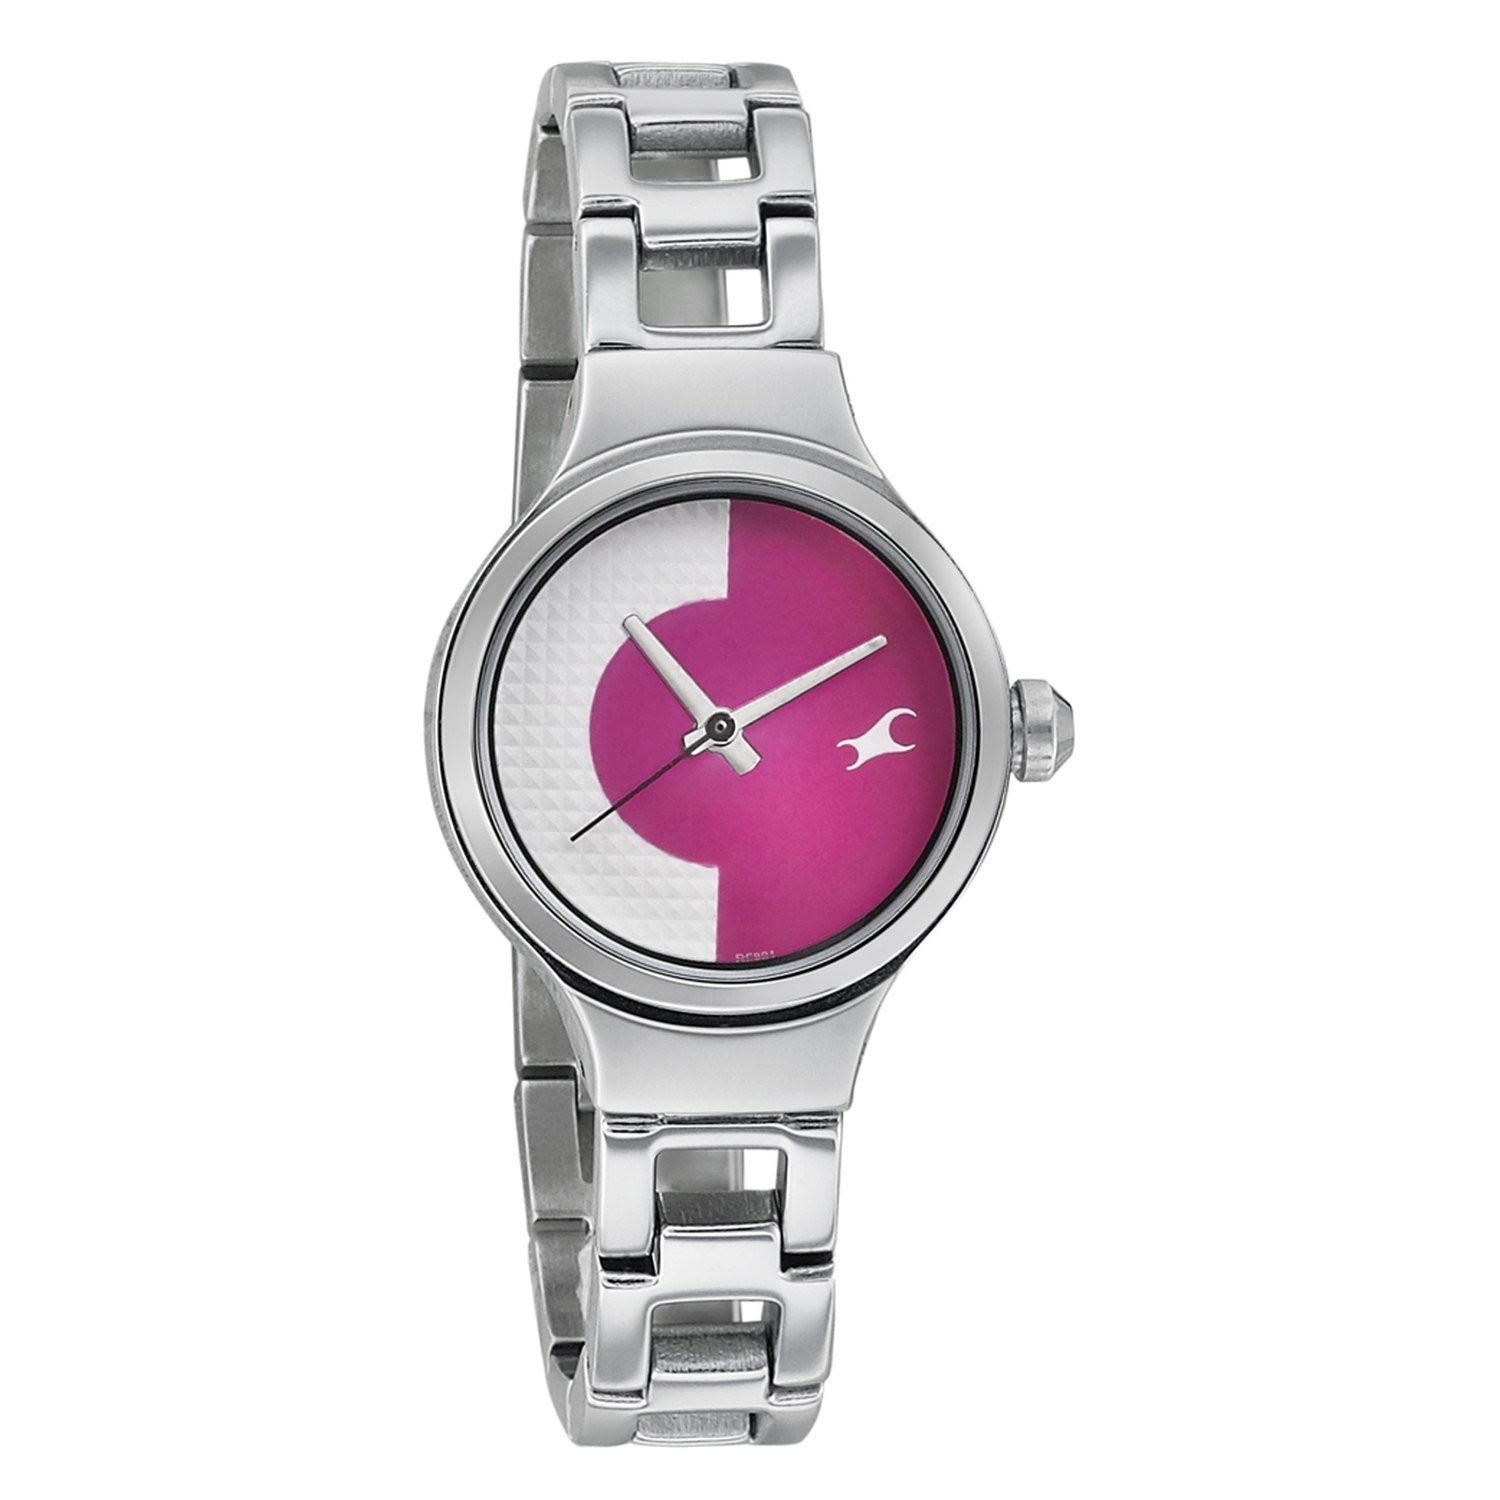 dial analog womens women pink dp amazon at fastrack monochrome buy online watch prices s india in watches low